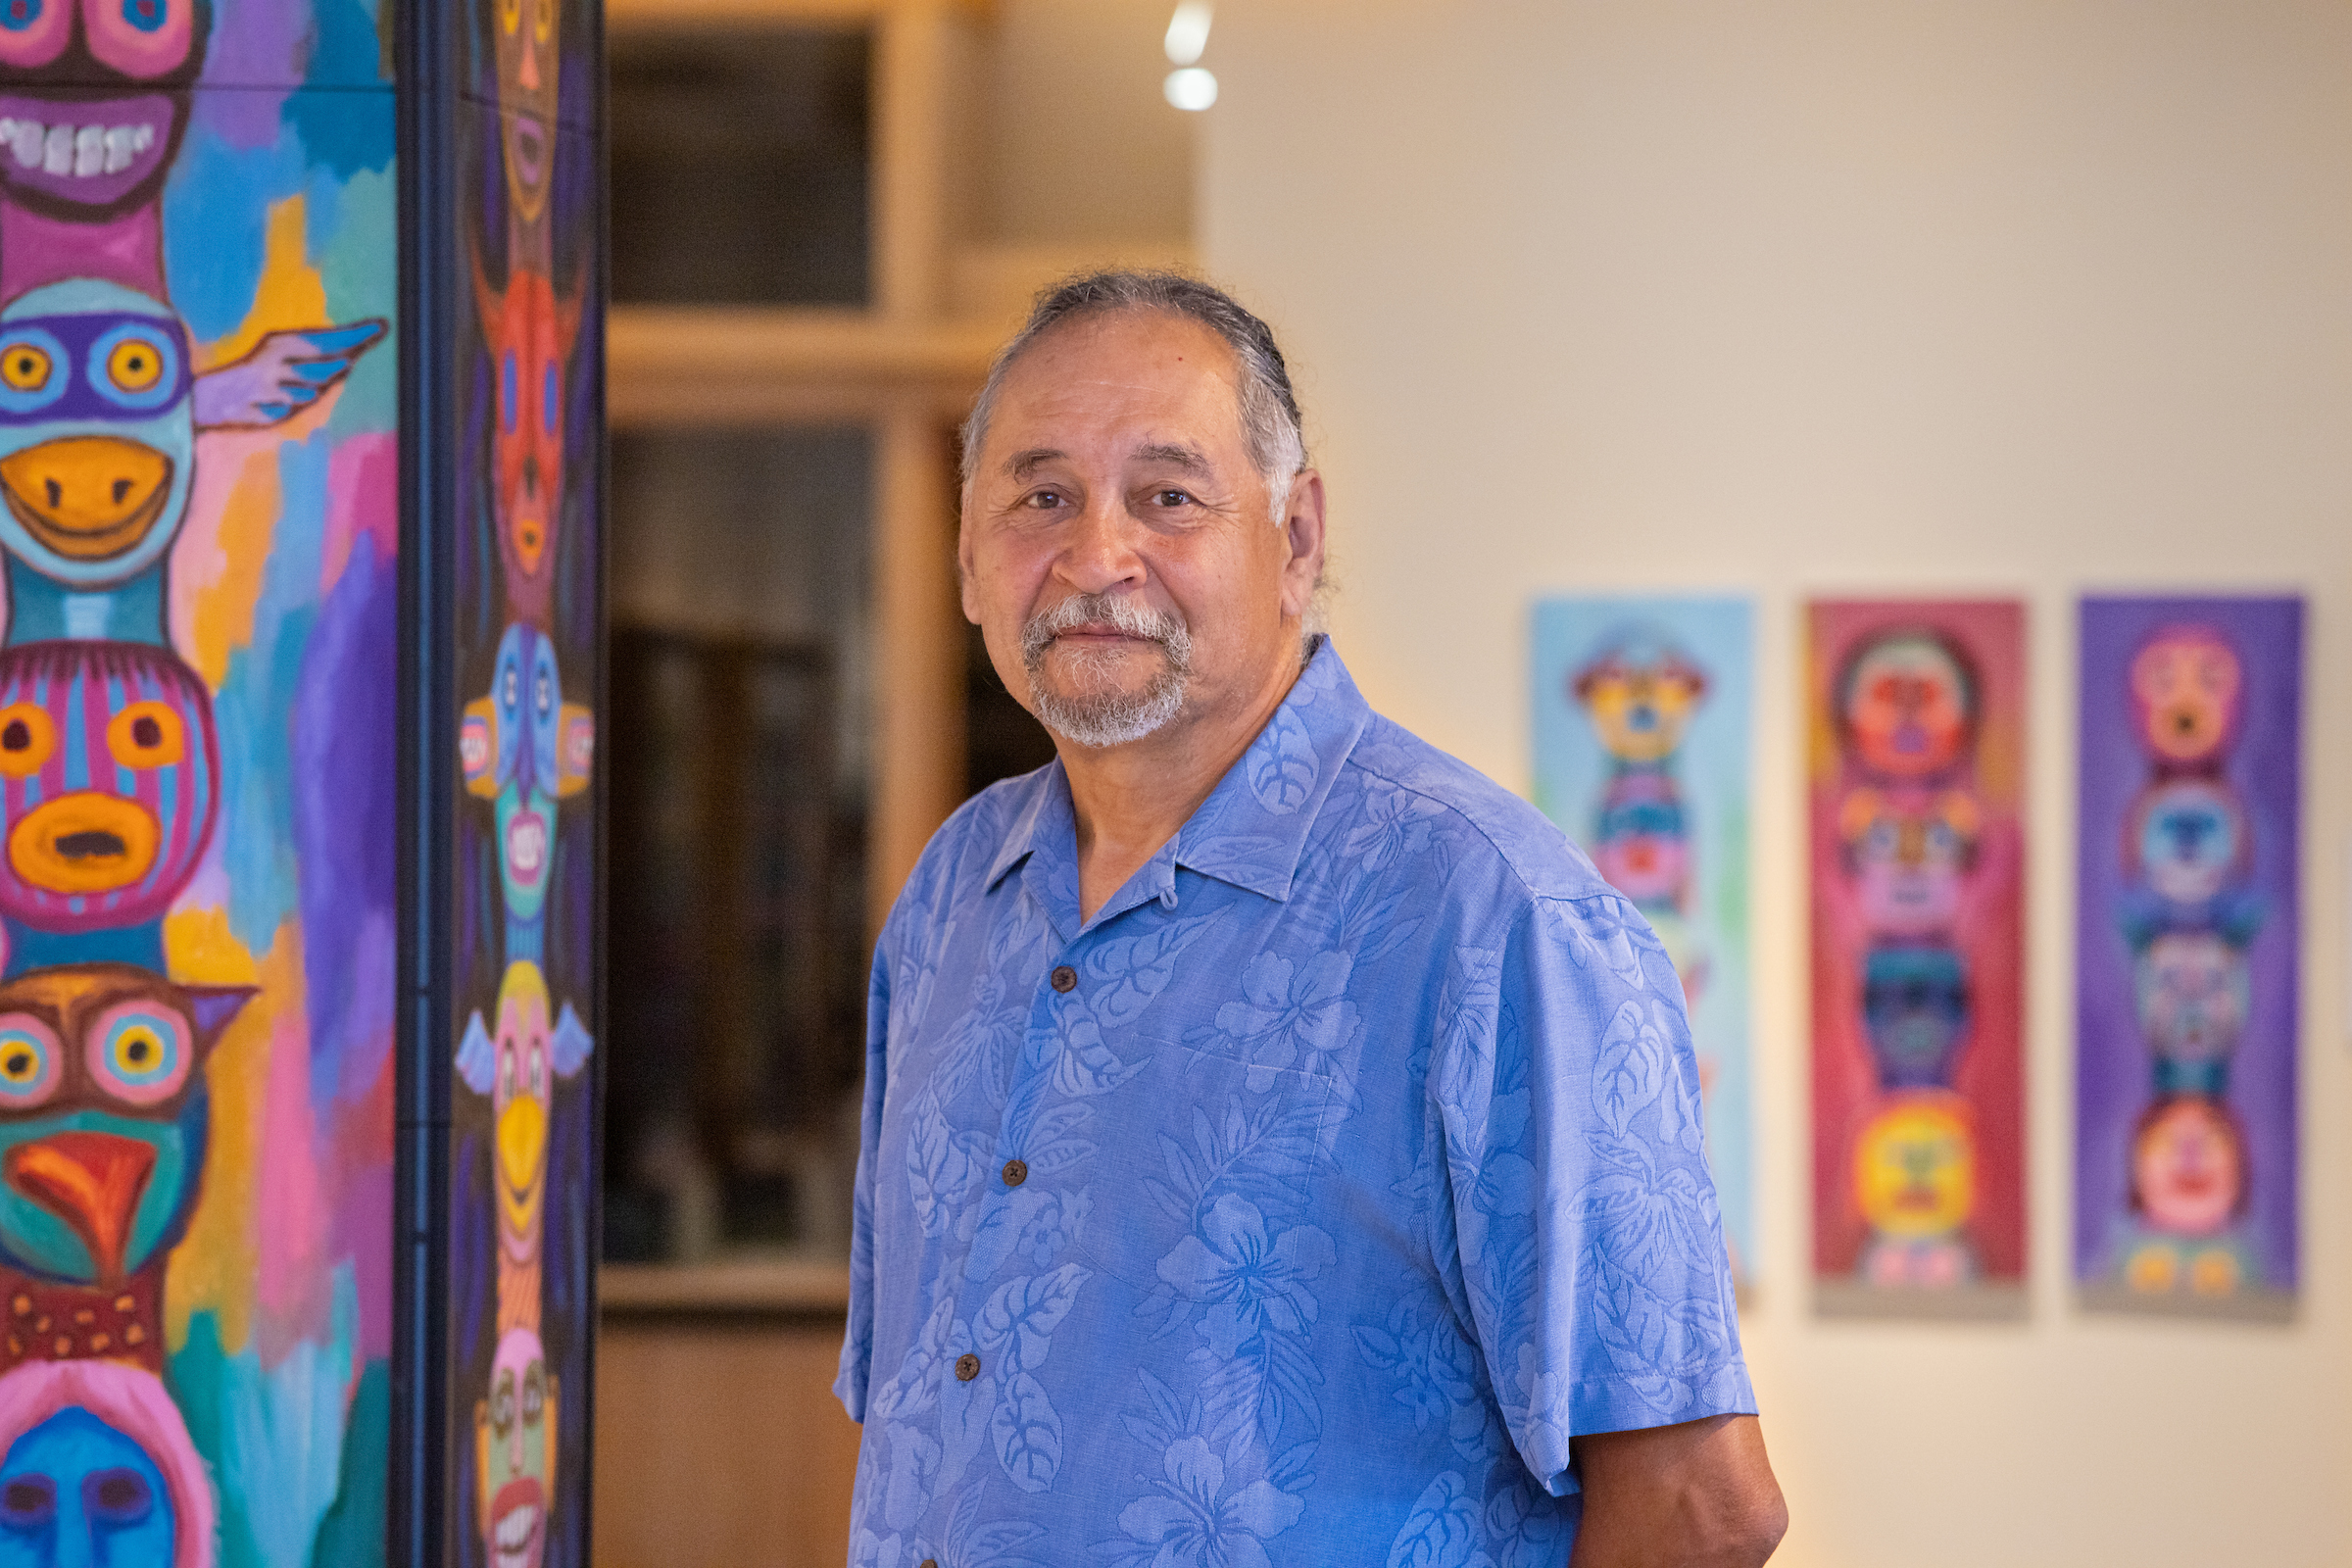 Minnesota Native News: Award Goes to Native Artist and Suicide Prevention While Embracing Culture